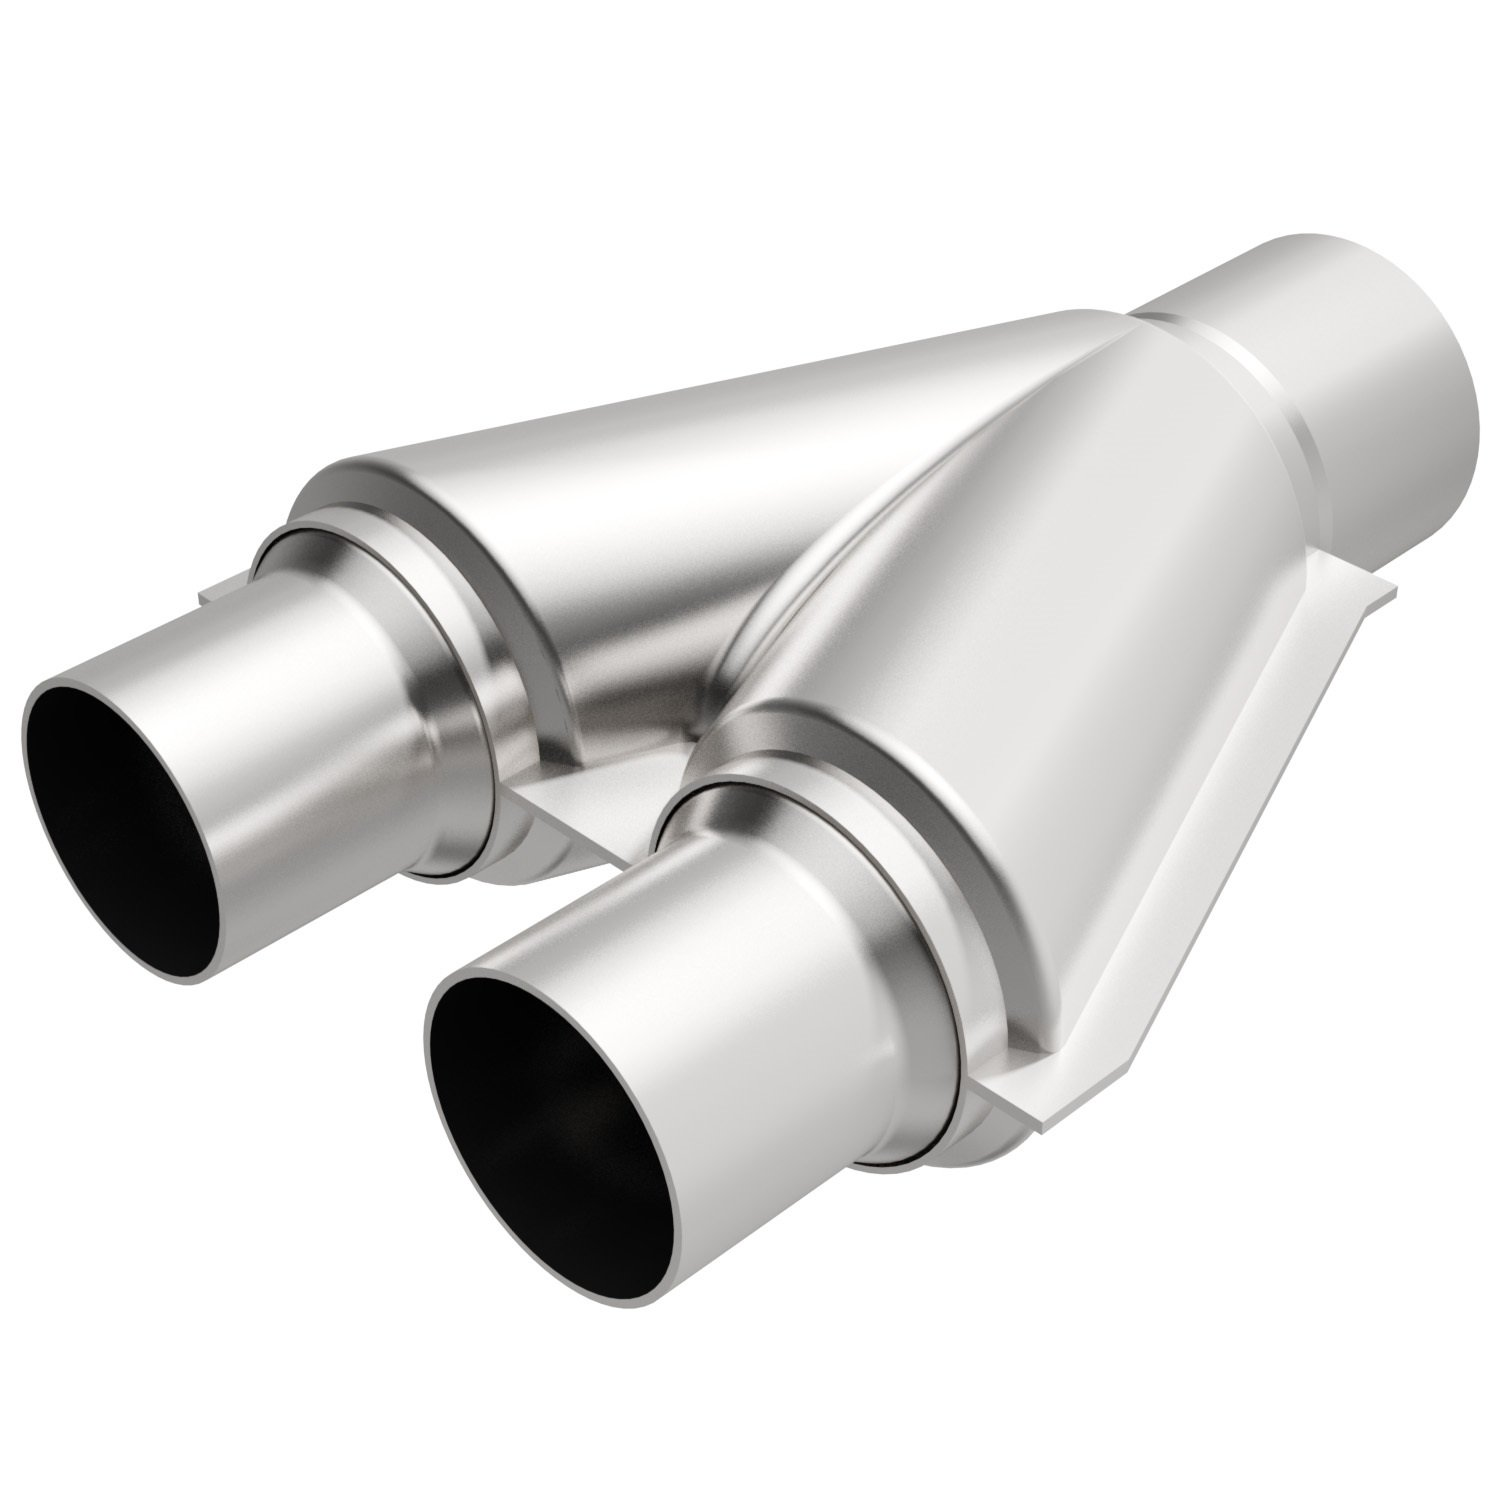 Amazon.com Magnaflow 10758 Stainless Steel 2.5  Exhaust Y-Pipe Automotive  sc 1 st  Amazon.com & Amazon.com: Magnaflow 10758 Stainless Steel 2.5